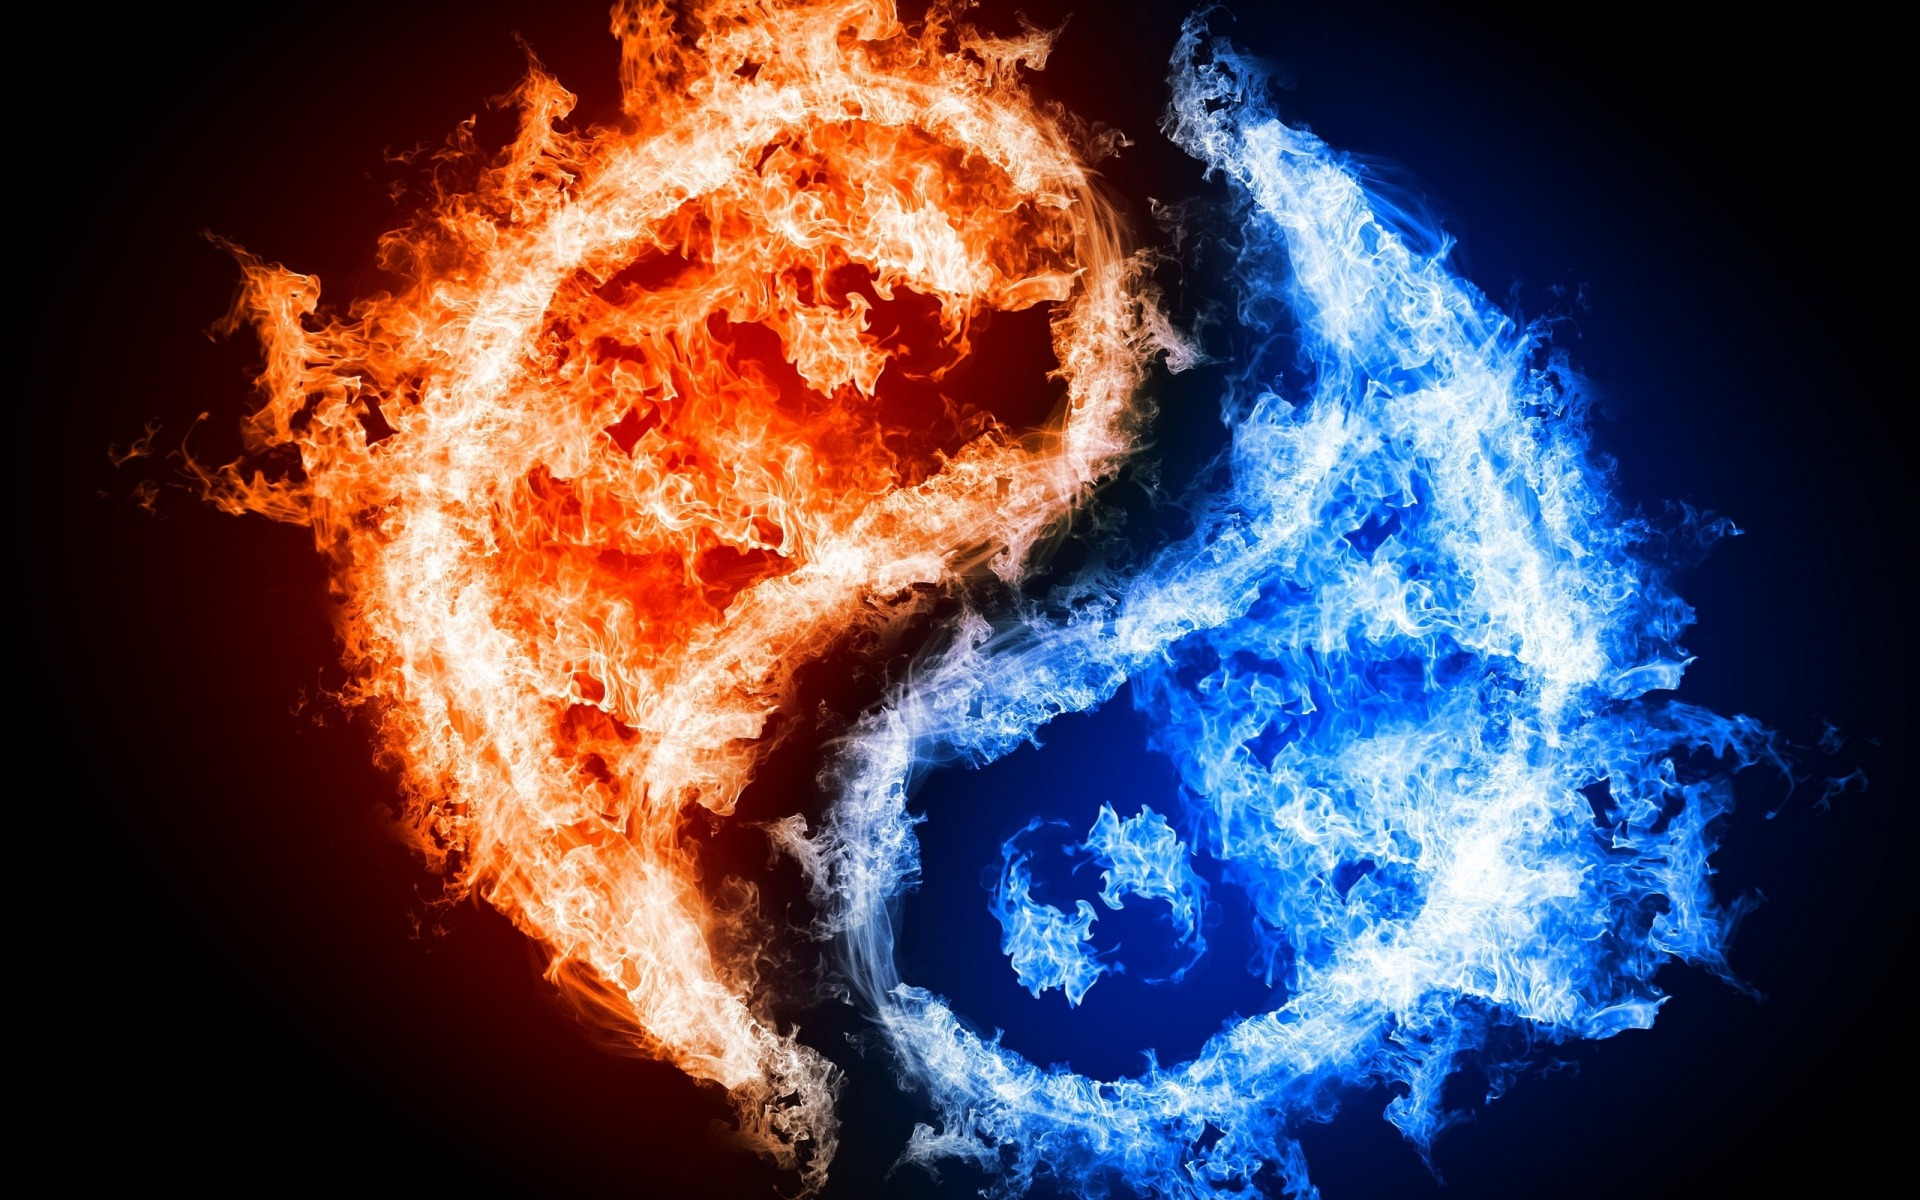 Blue and Red Fire Wallpaper wallpaper Blue and Red Fire Wallpaper hd 1920x1200